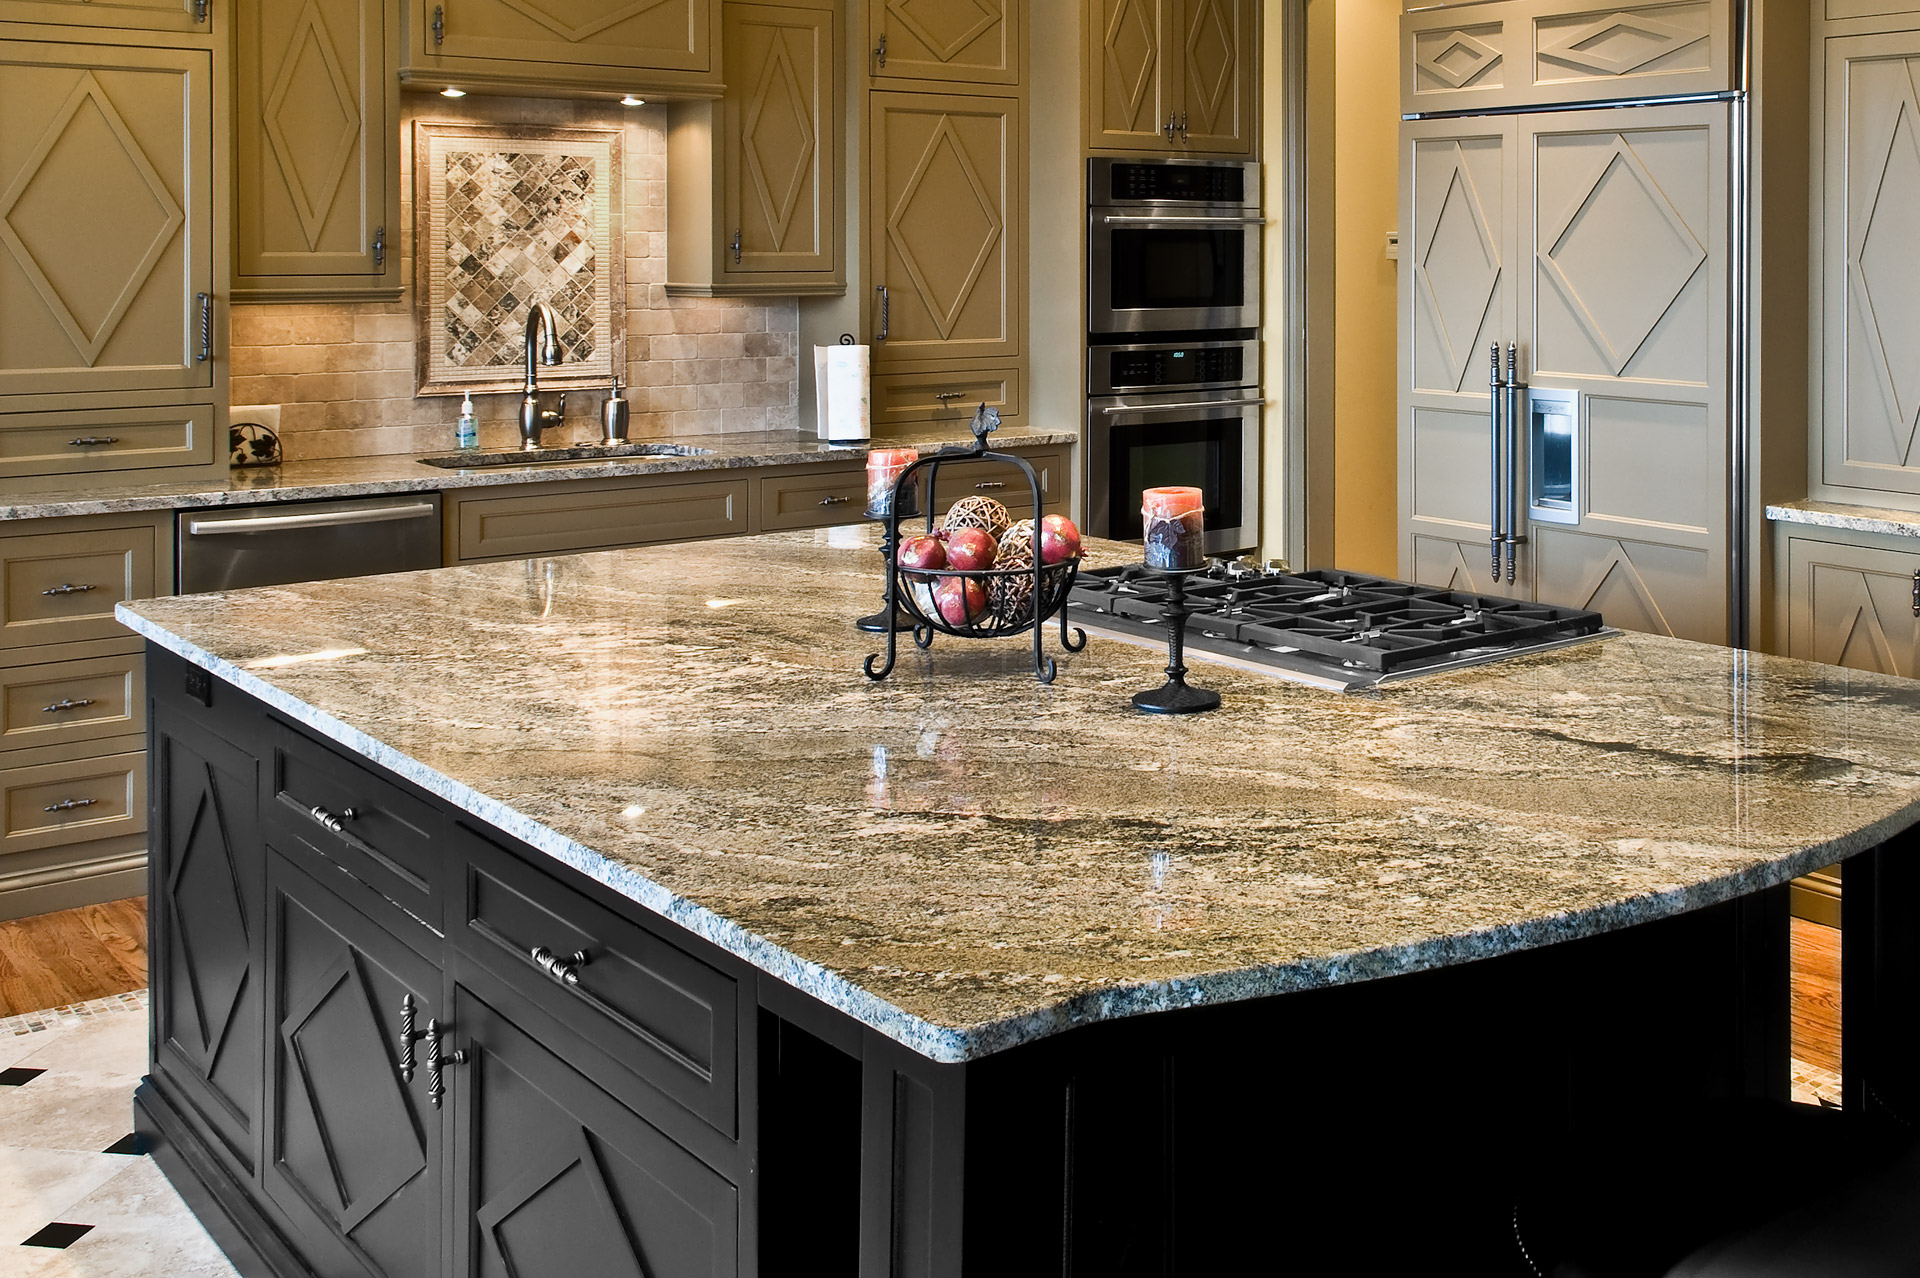 Stone countertop: pictures for kitchens with natural stone worktops